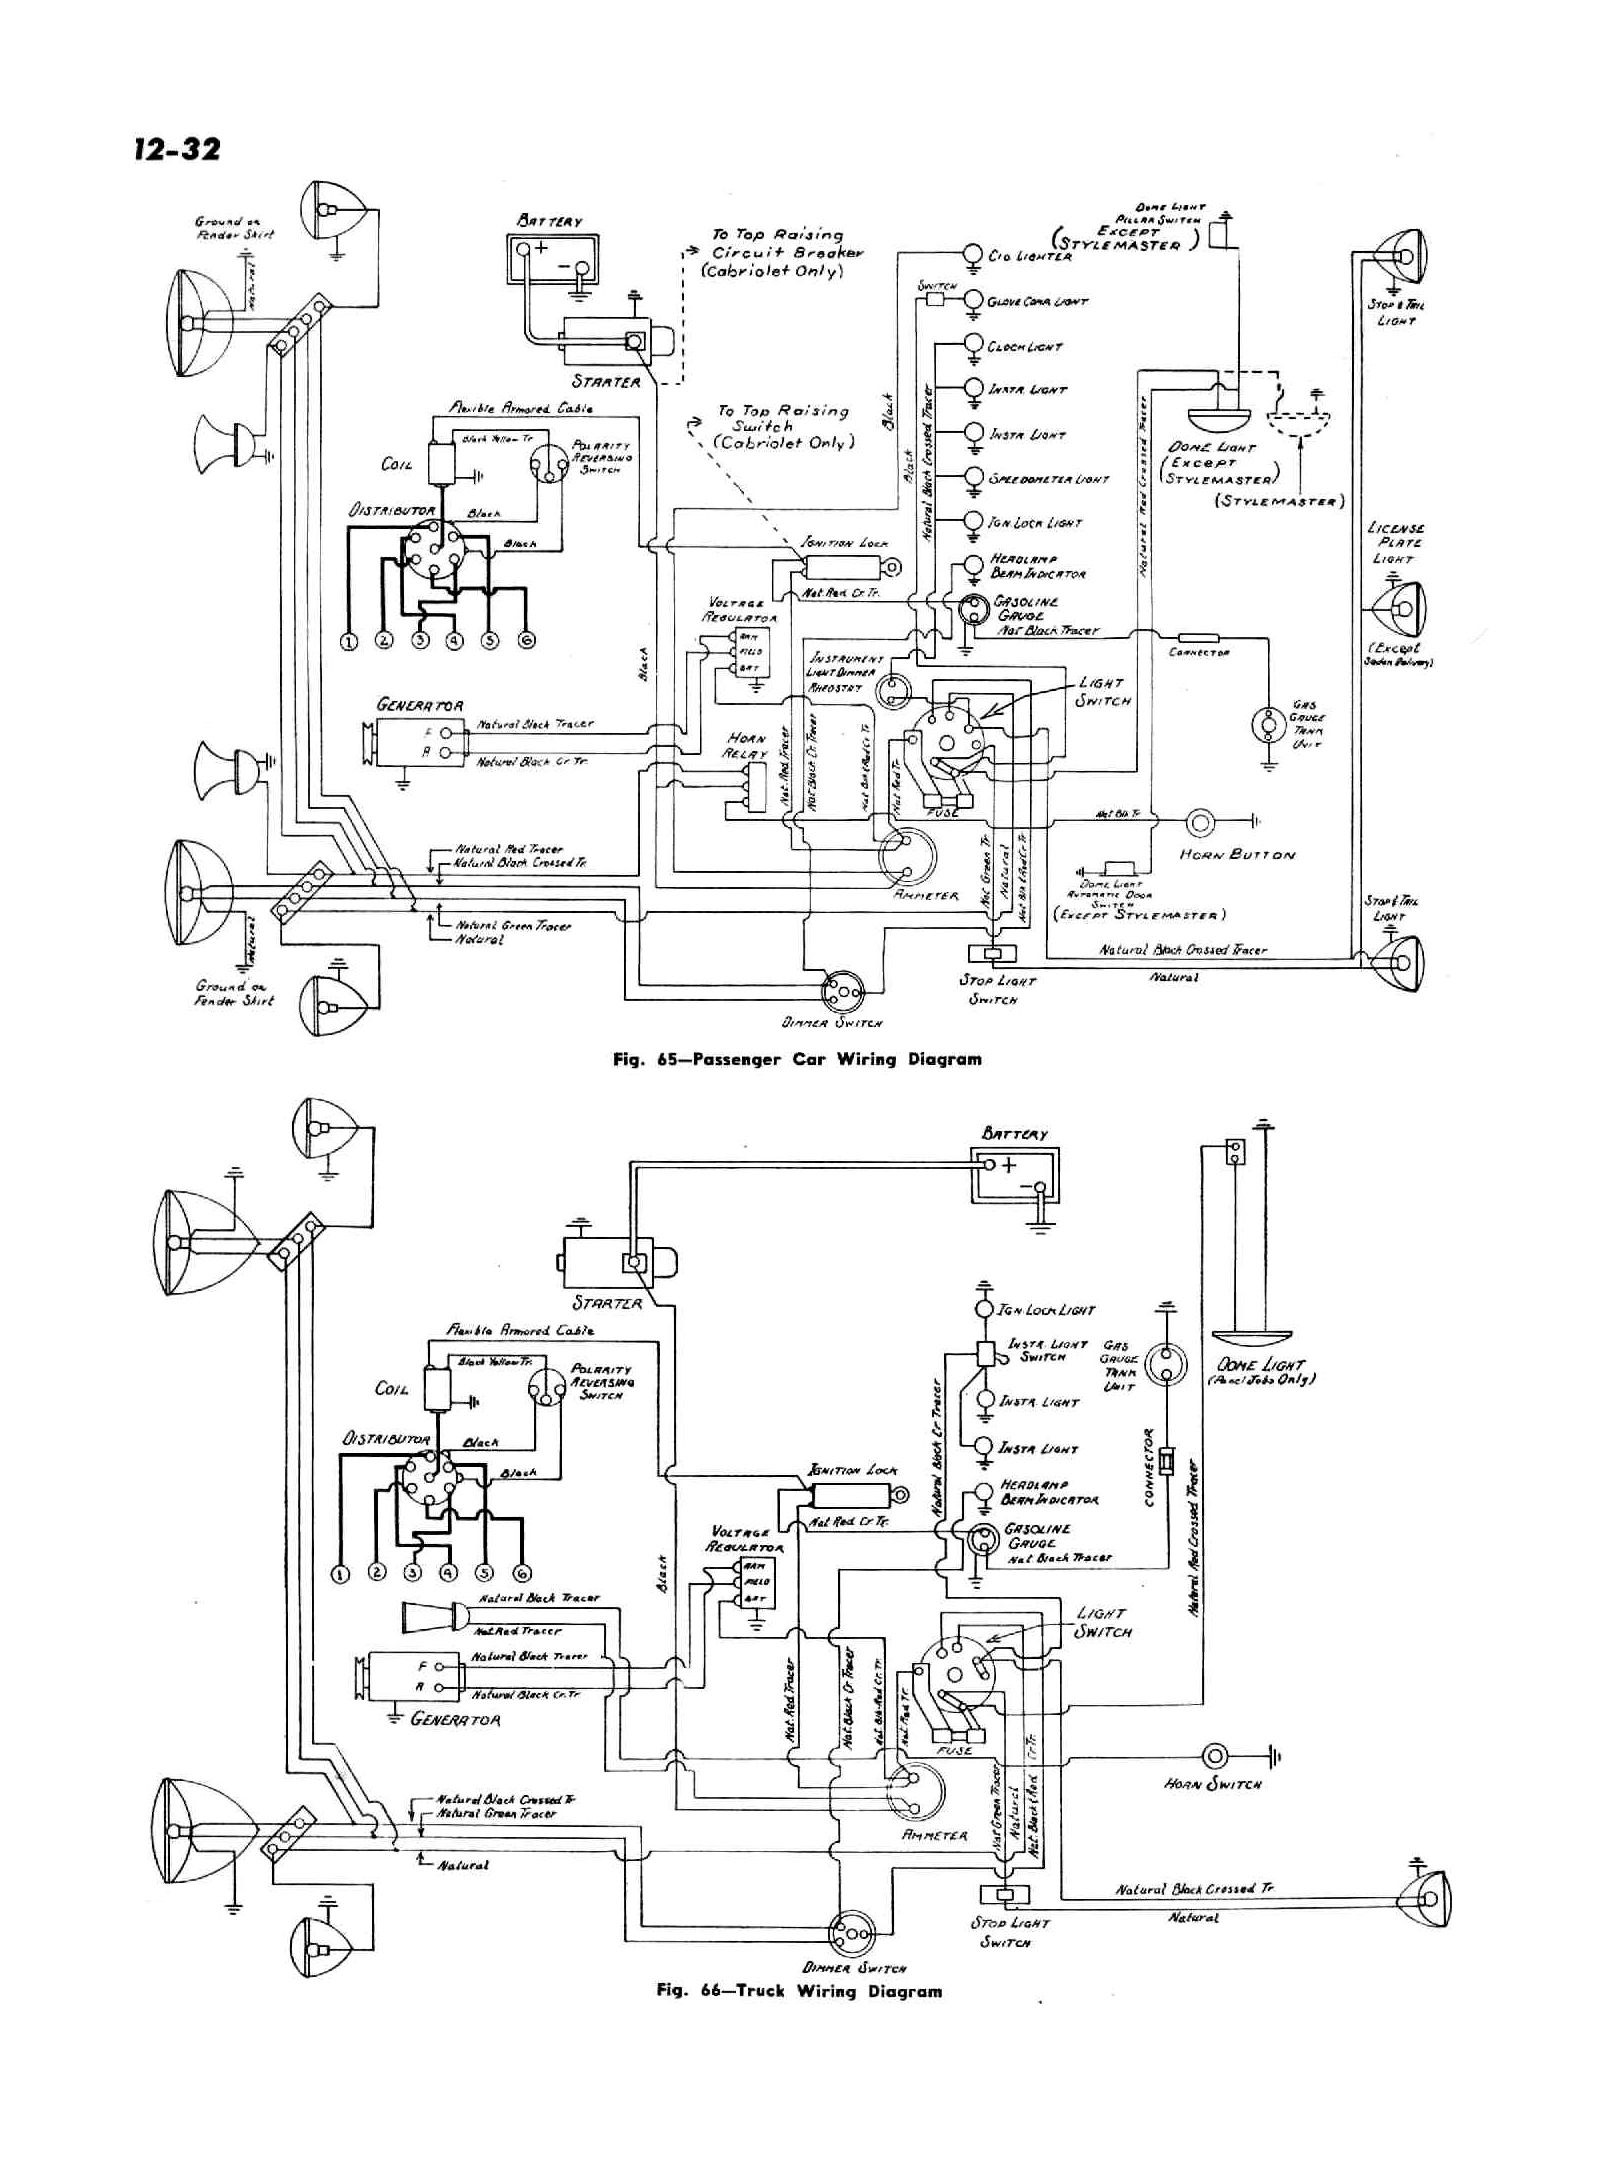 Car Wiring Diagrams Schematic Wiring Diagrams Of Car Wiring Diagrams Schematic